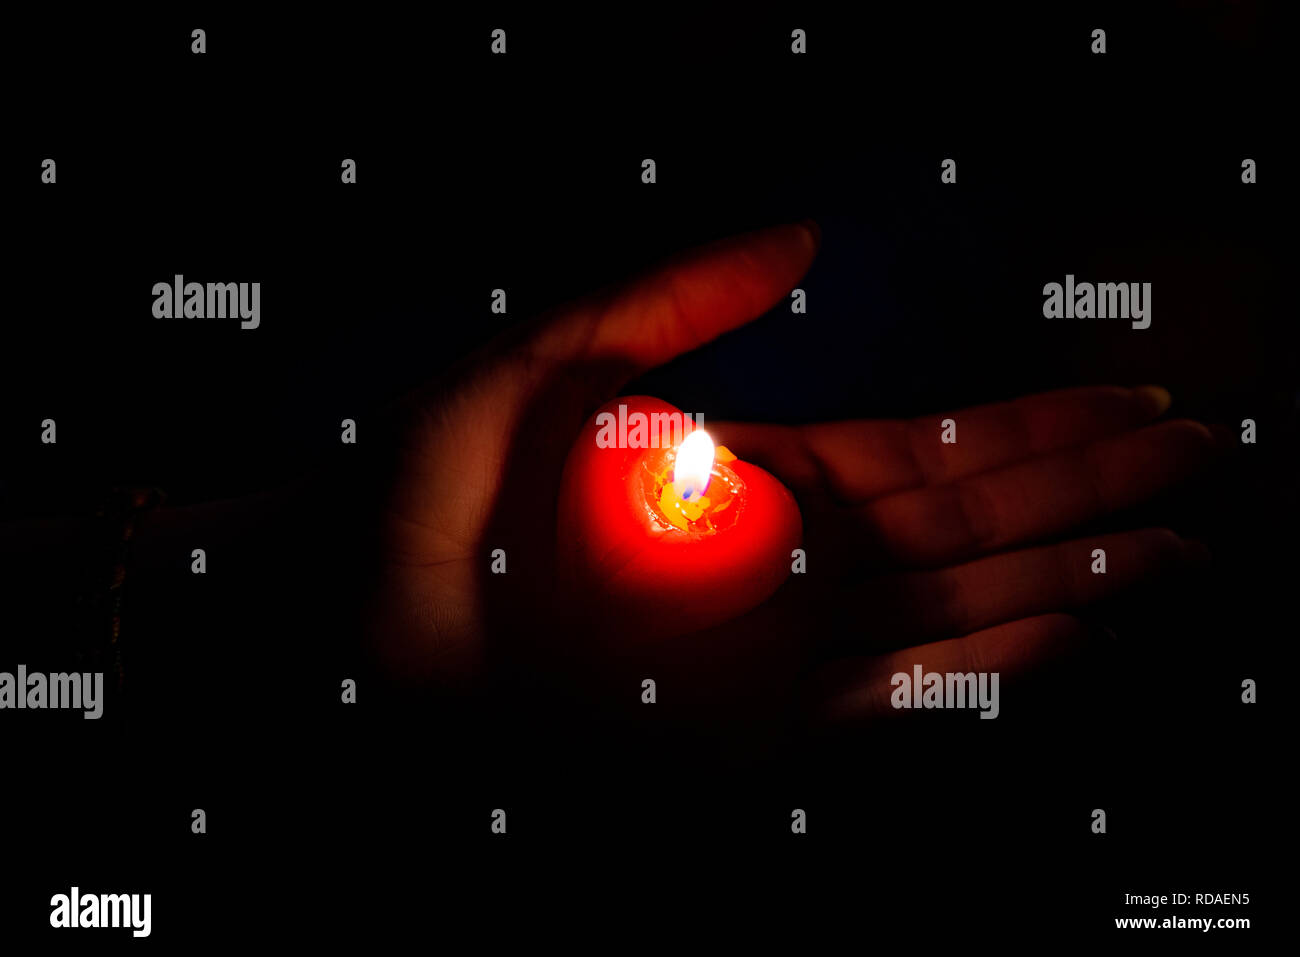 Red burning candle lying on a woman's hand - Stock Image